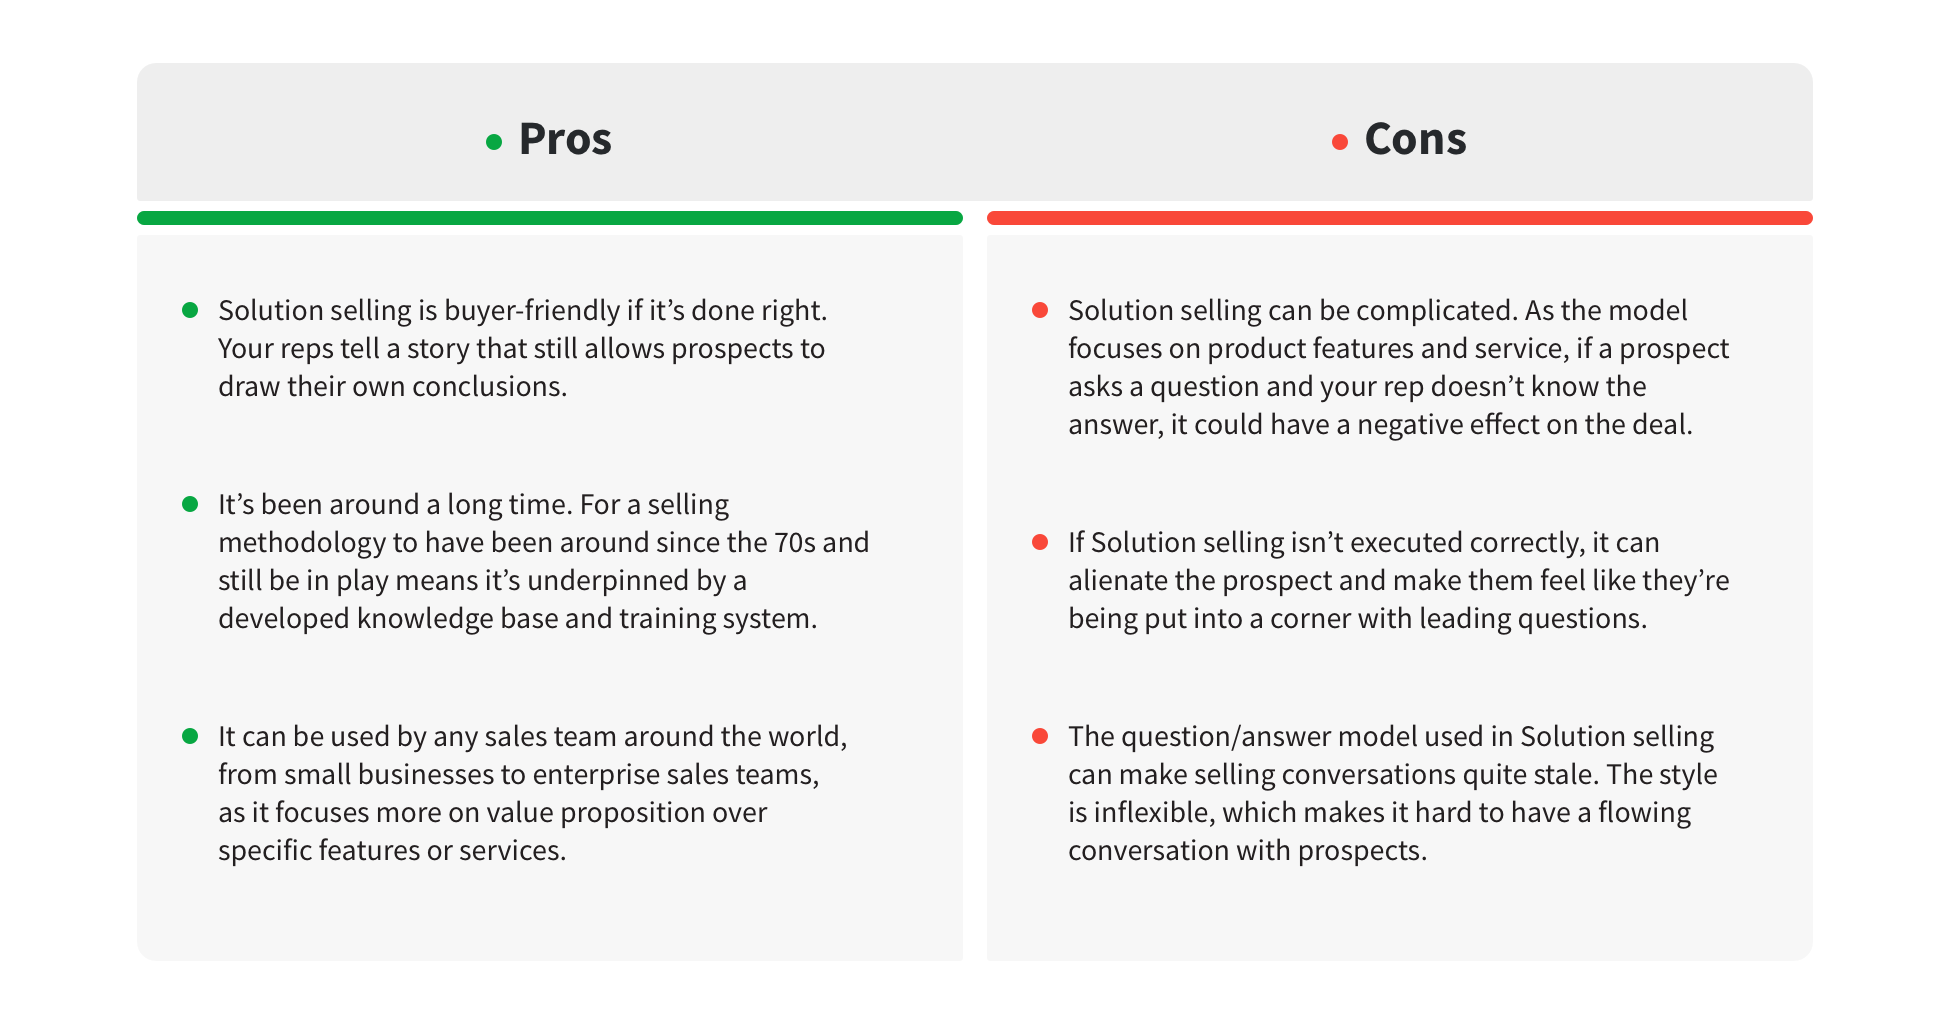 solution selling pros and cons